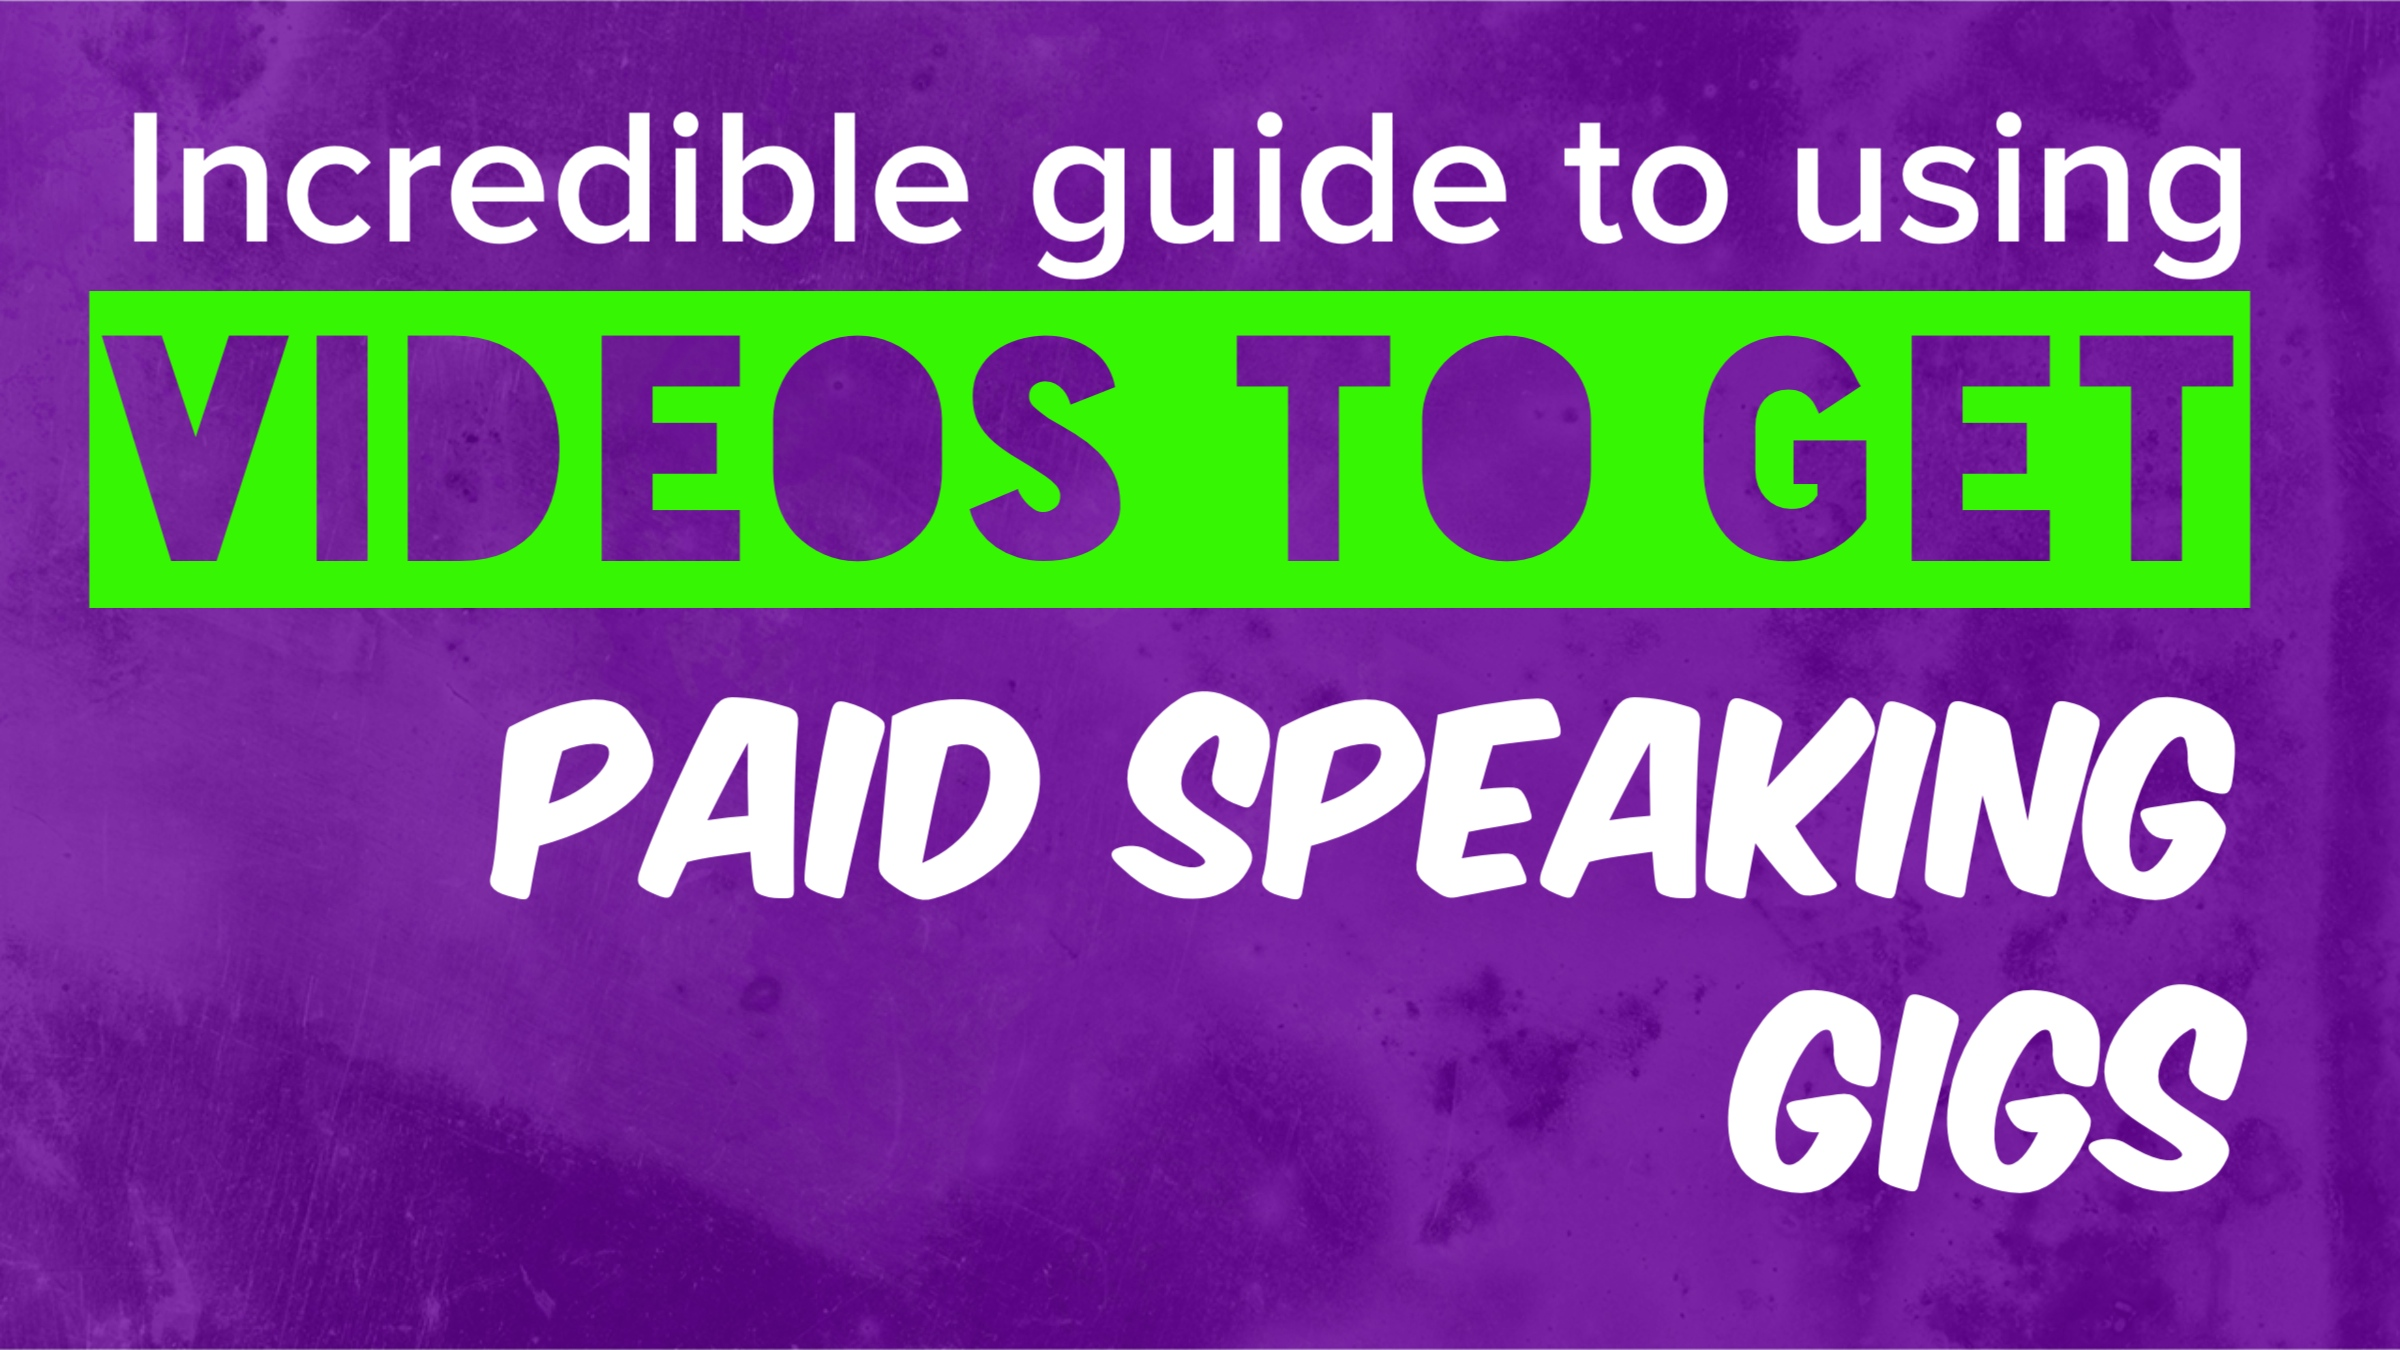 Ultimate Guide To Getting Paid Speaking Gigs Using Video